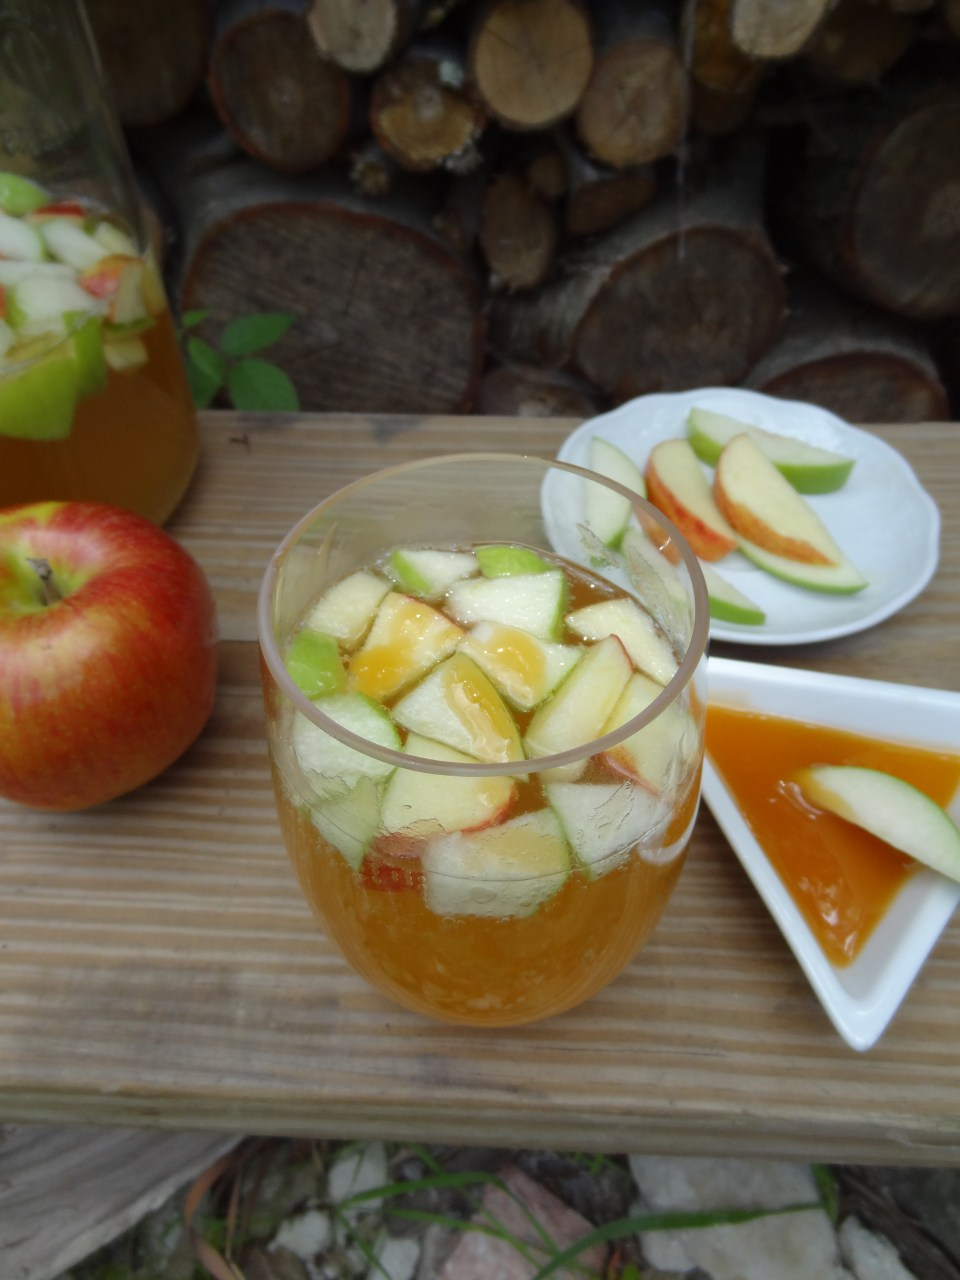 Welcome Autumn with these delicious Sparkling Apple Cider Drinks - The perfect way to celebrate! #falldrinks #apple